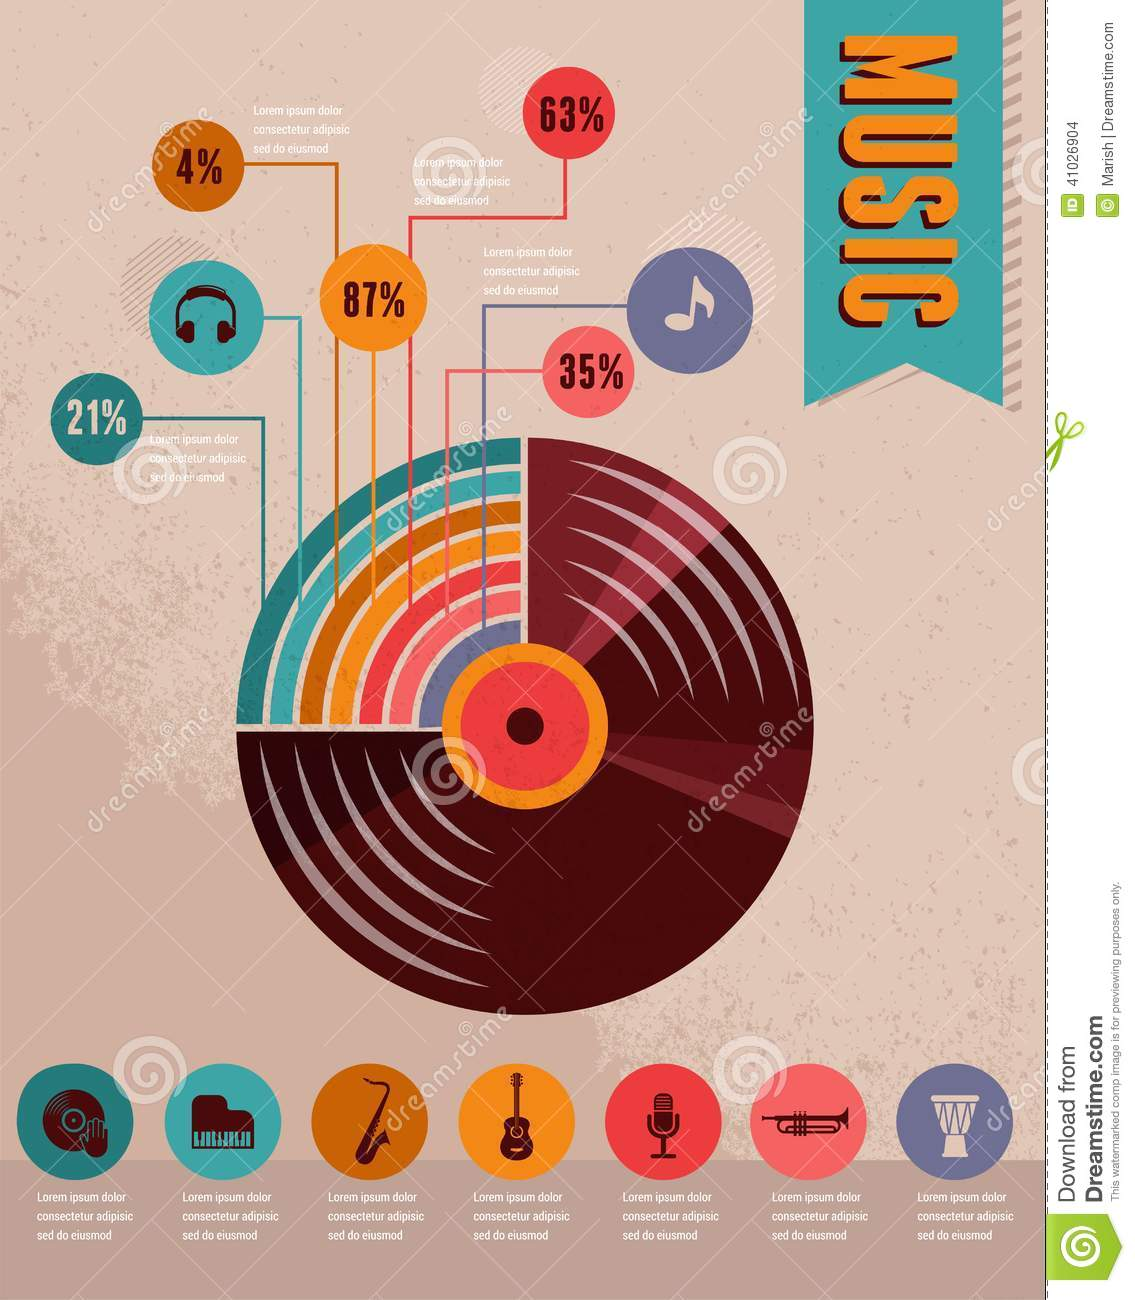 music-infographic-icon-set-instruments-data-graphs-text-41026904.jpg